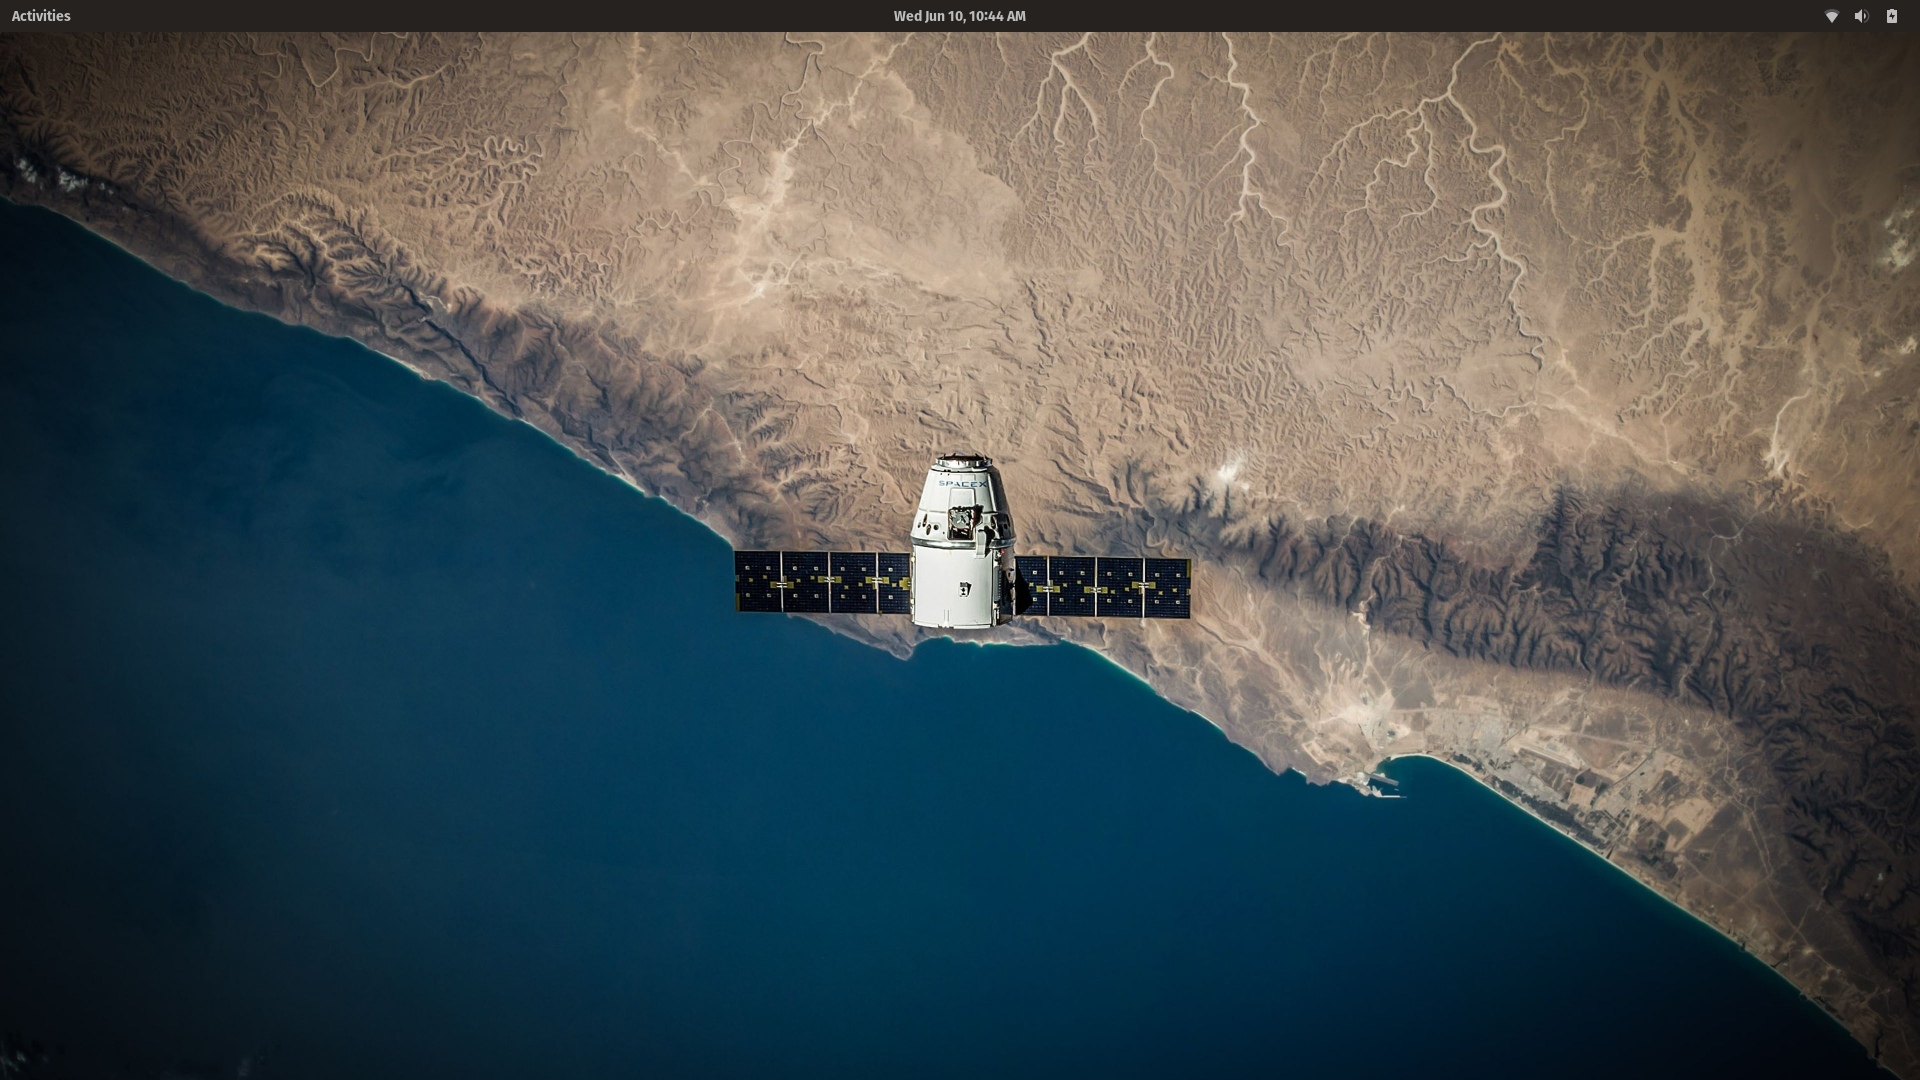 spacex-wallpaper.png